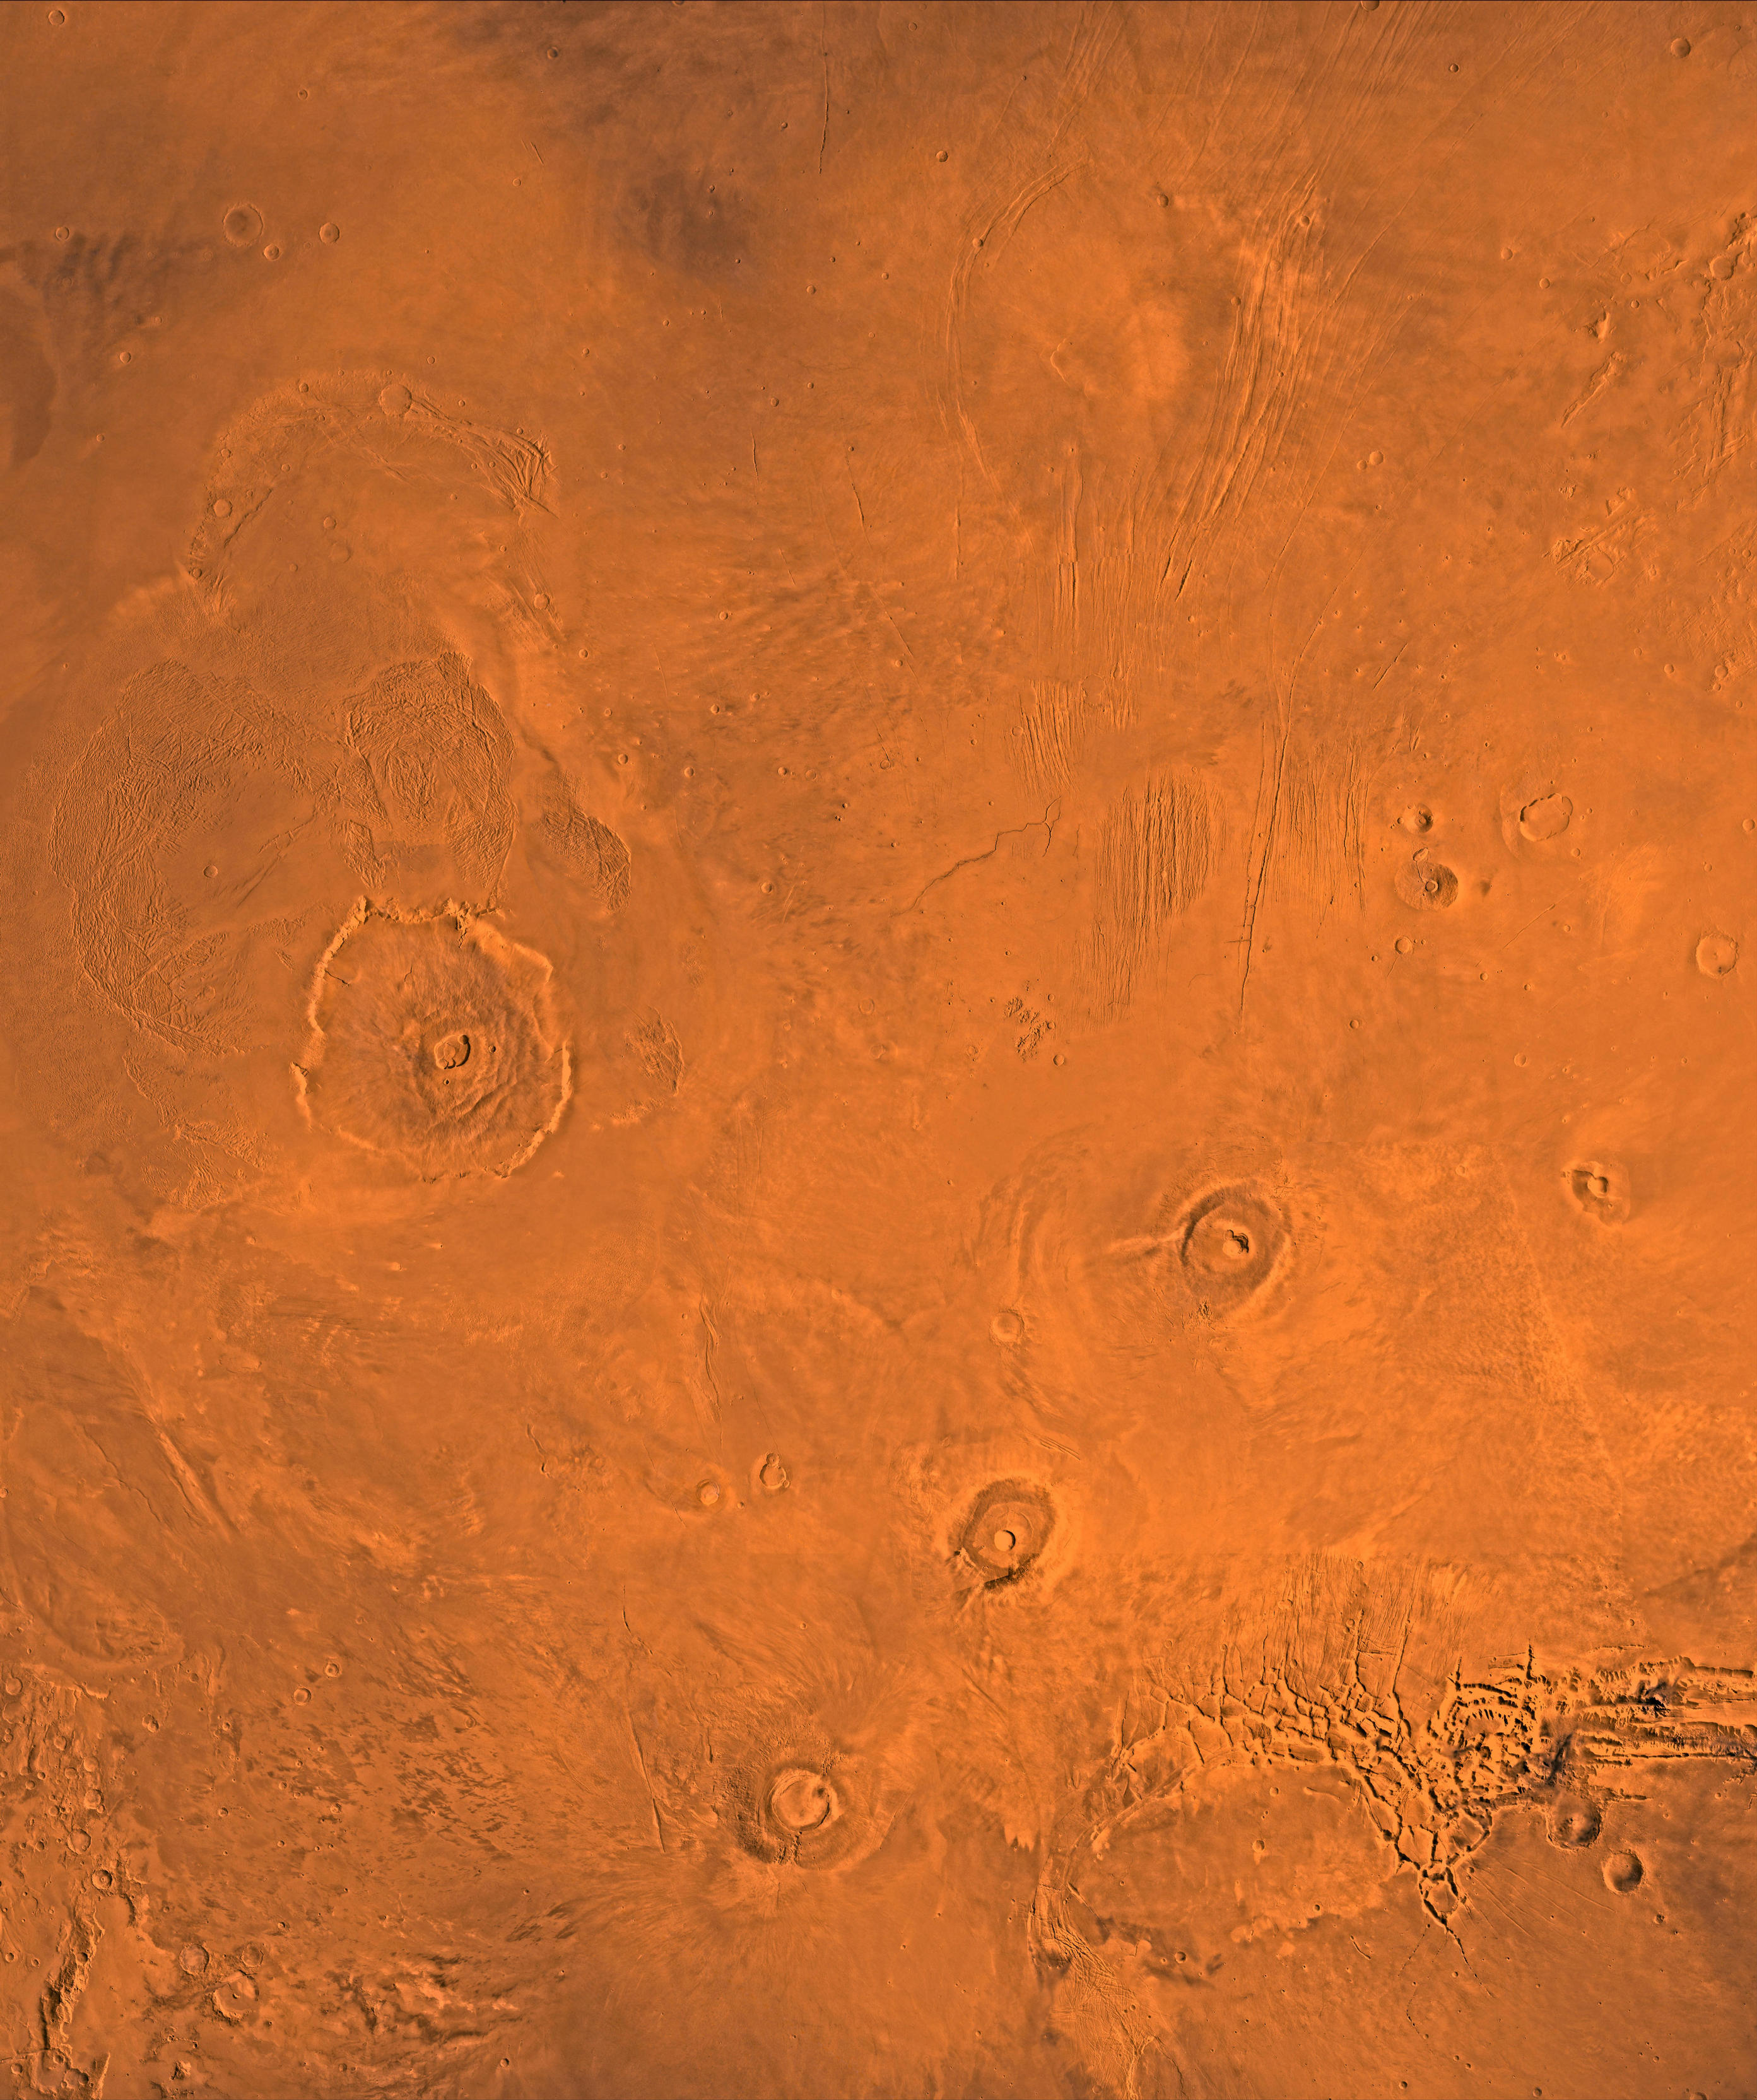 This is a close-up image of the Tharsis volcano.